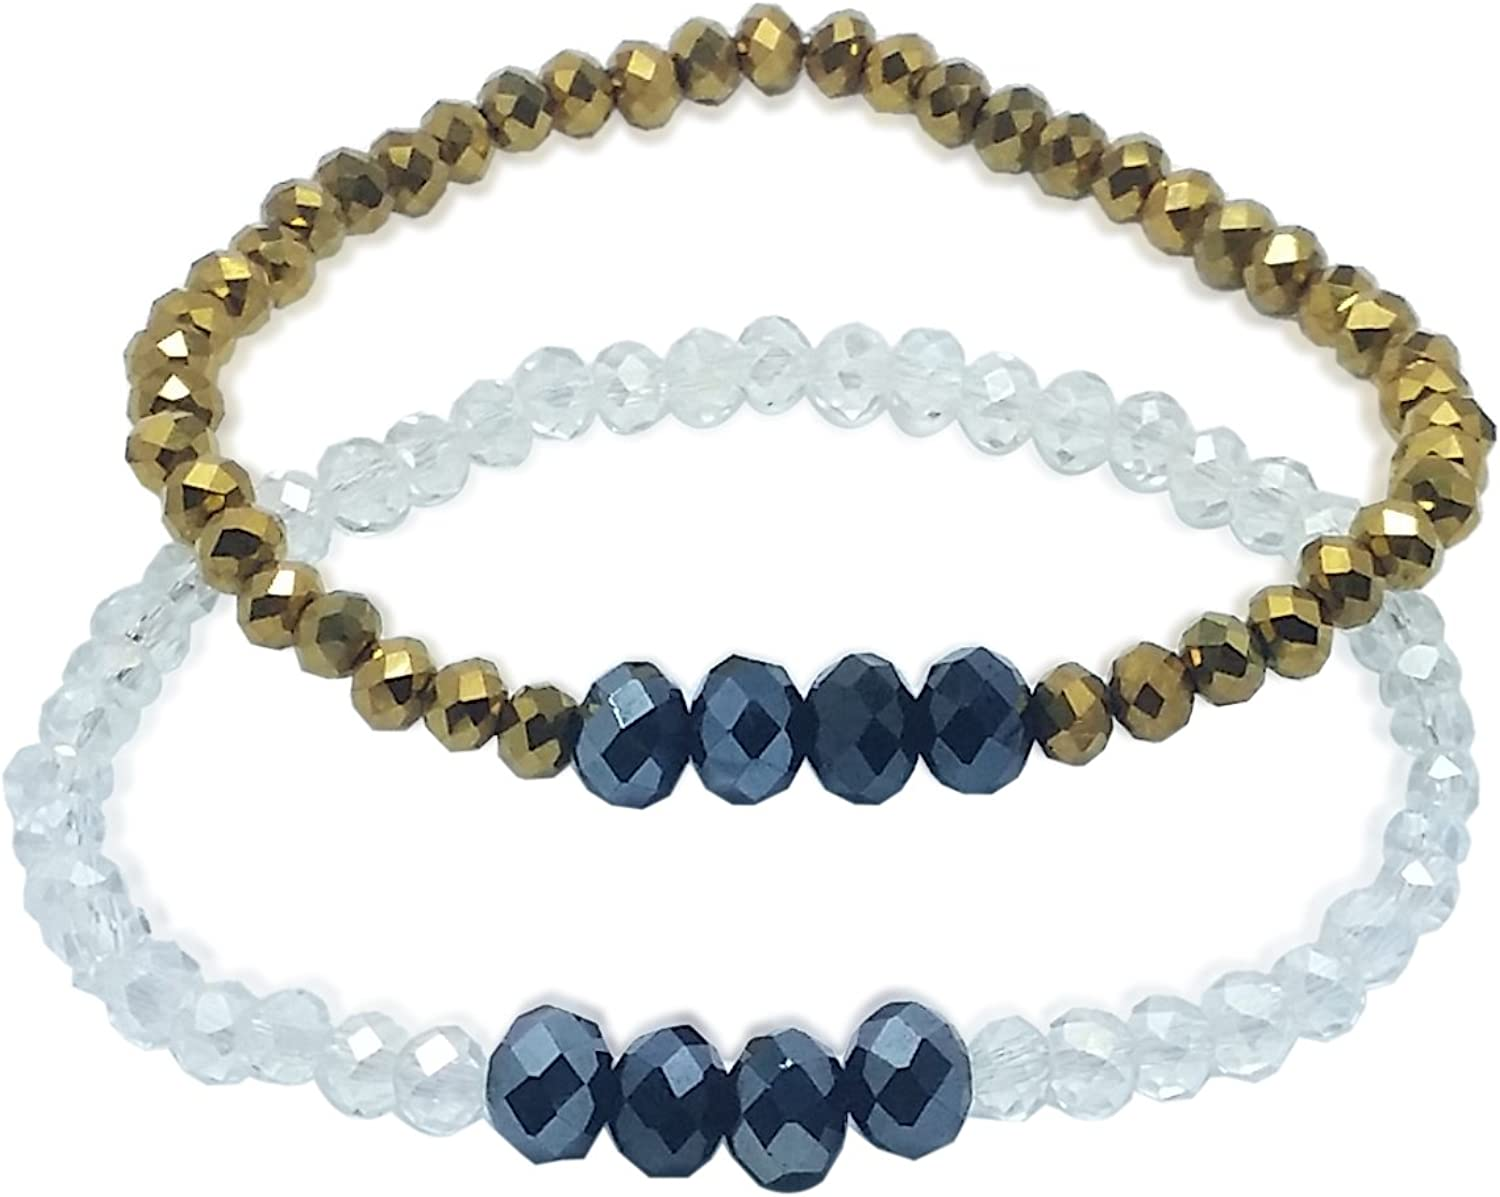 Stretch Bracelet, ICY White and gold with Black Small Simple Shiny Crystals, 2Pack